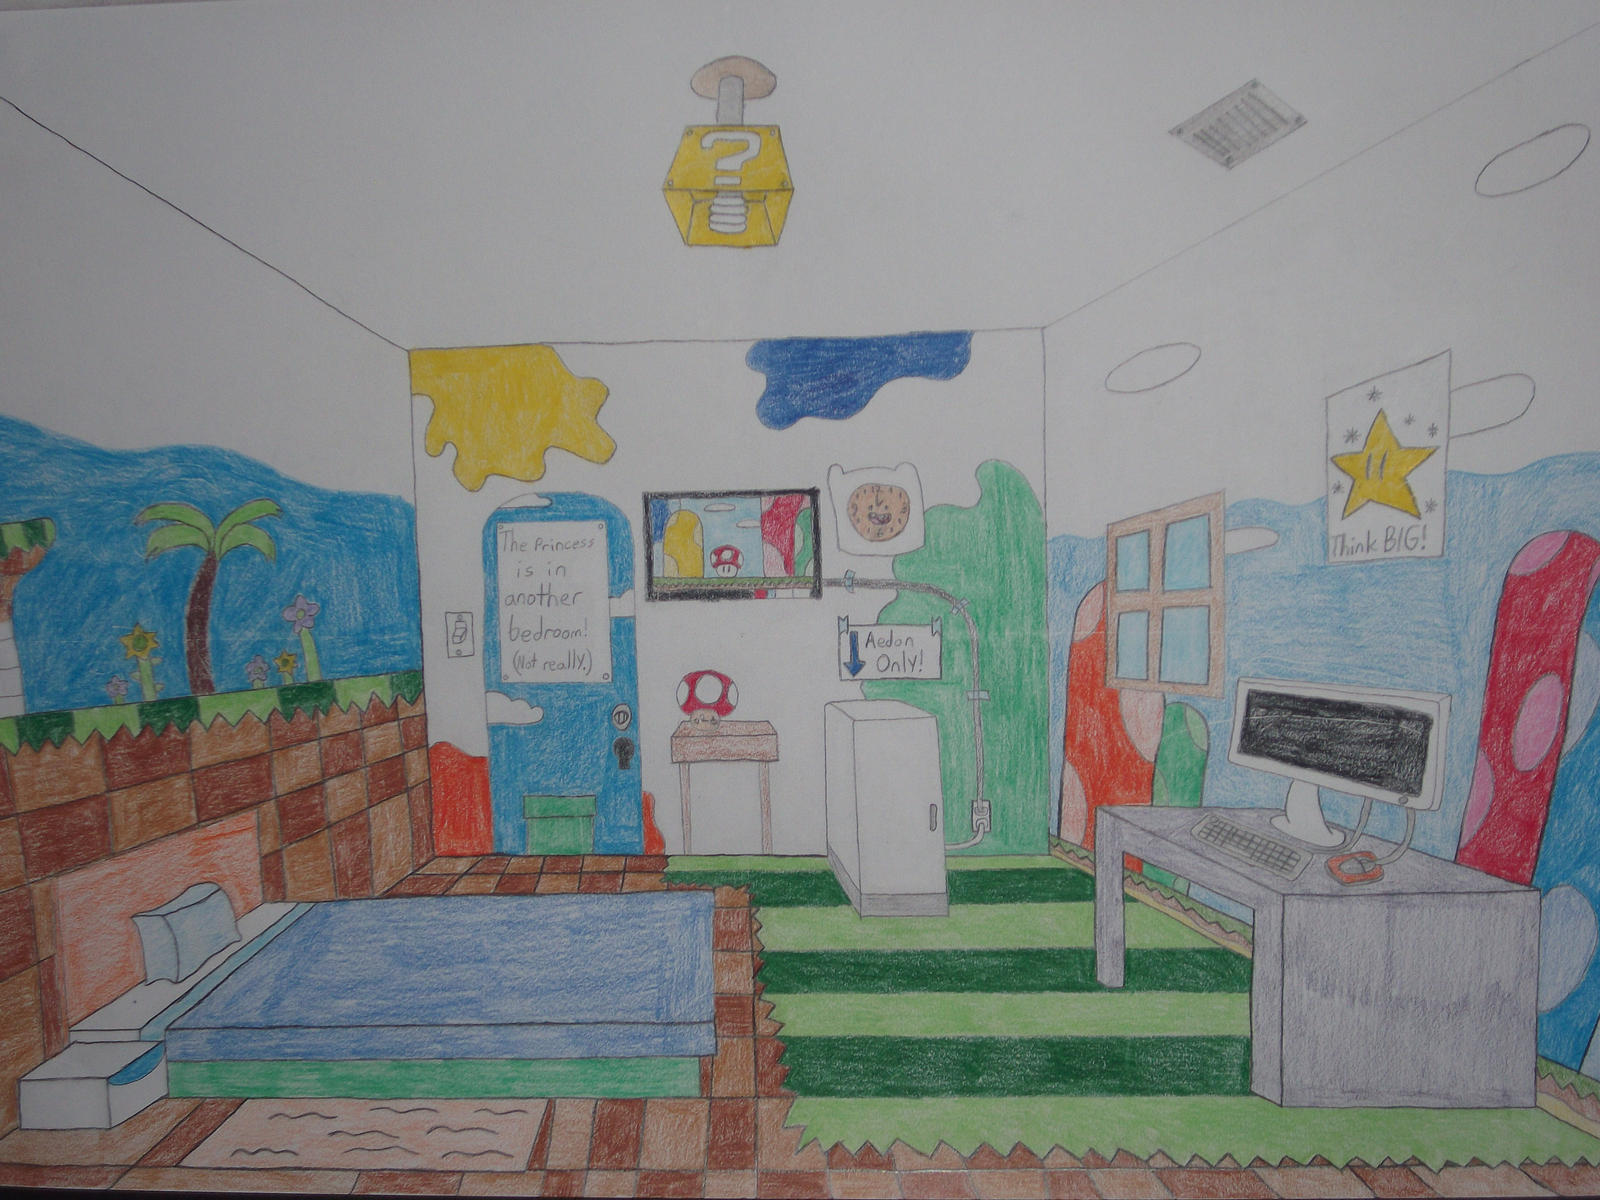 My Dream Room By Rabbidlover01 My Dream Room By Rabbidlover01